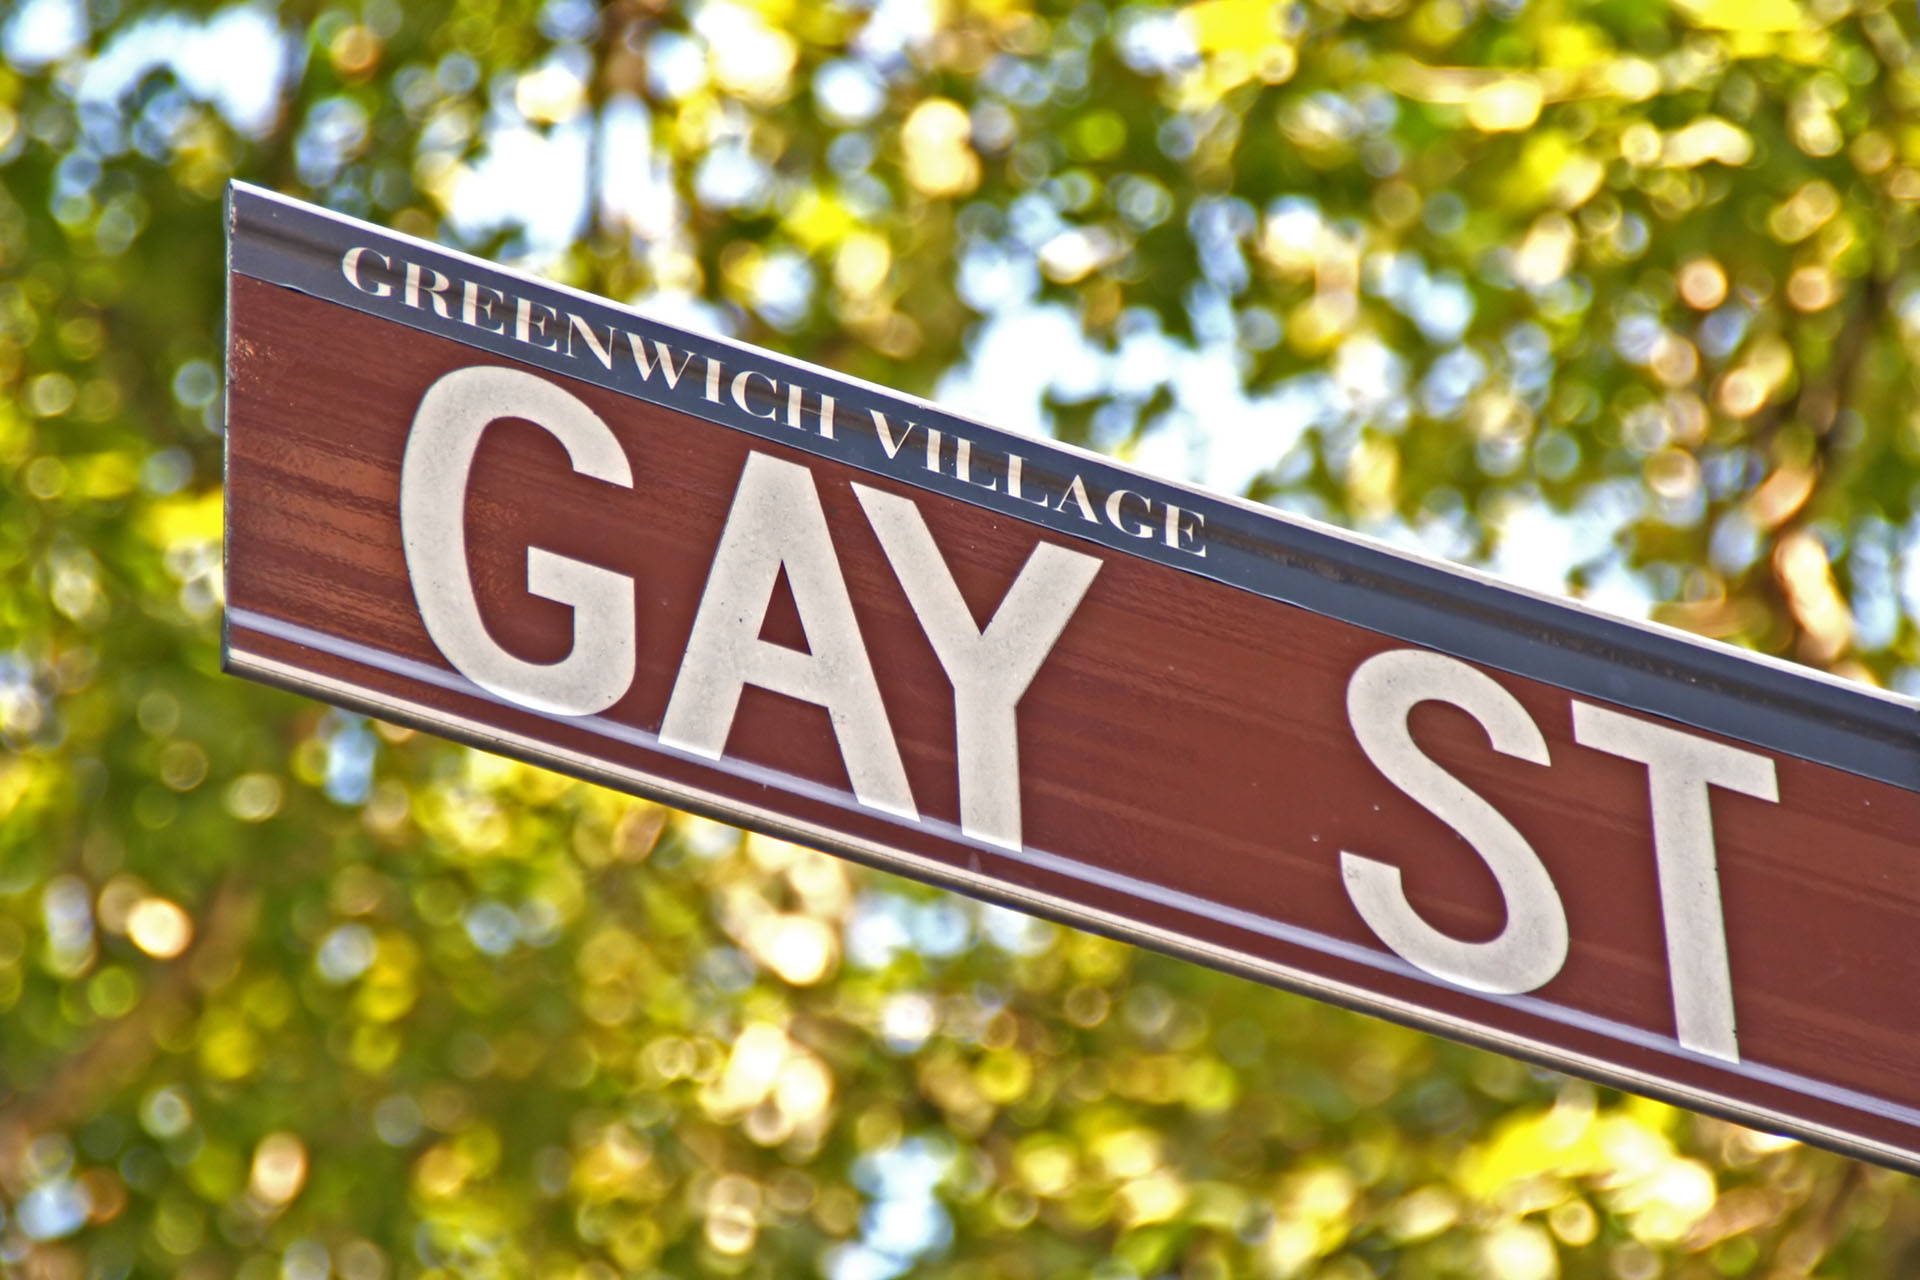 Quartier gay de New York